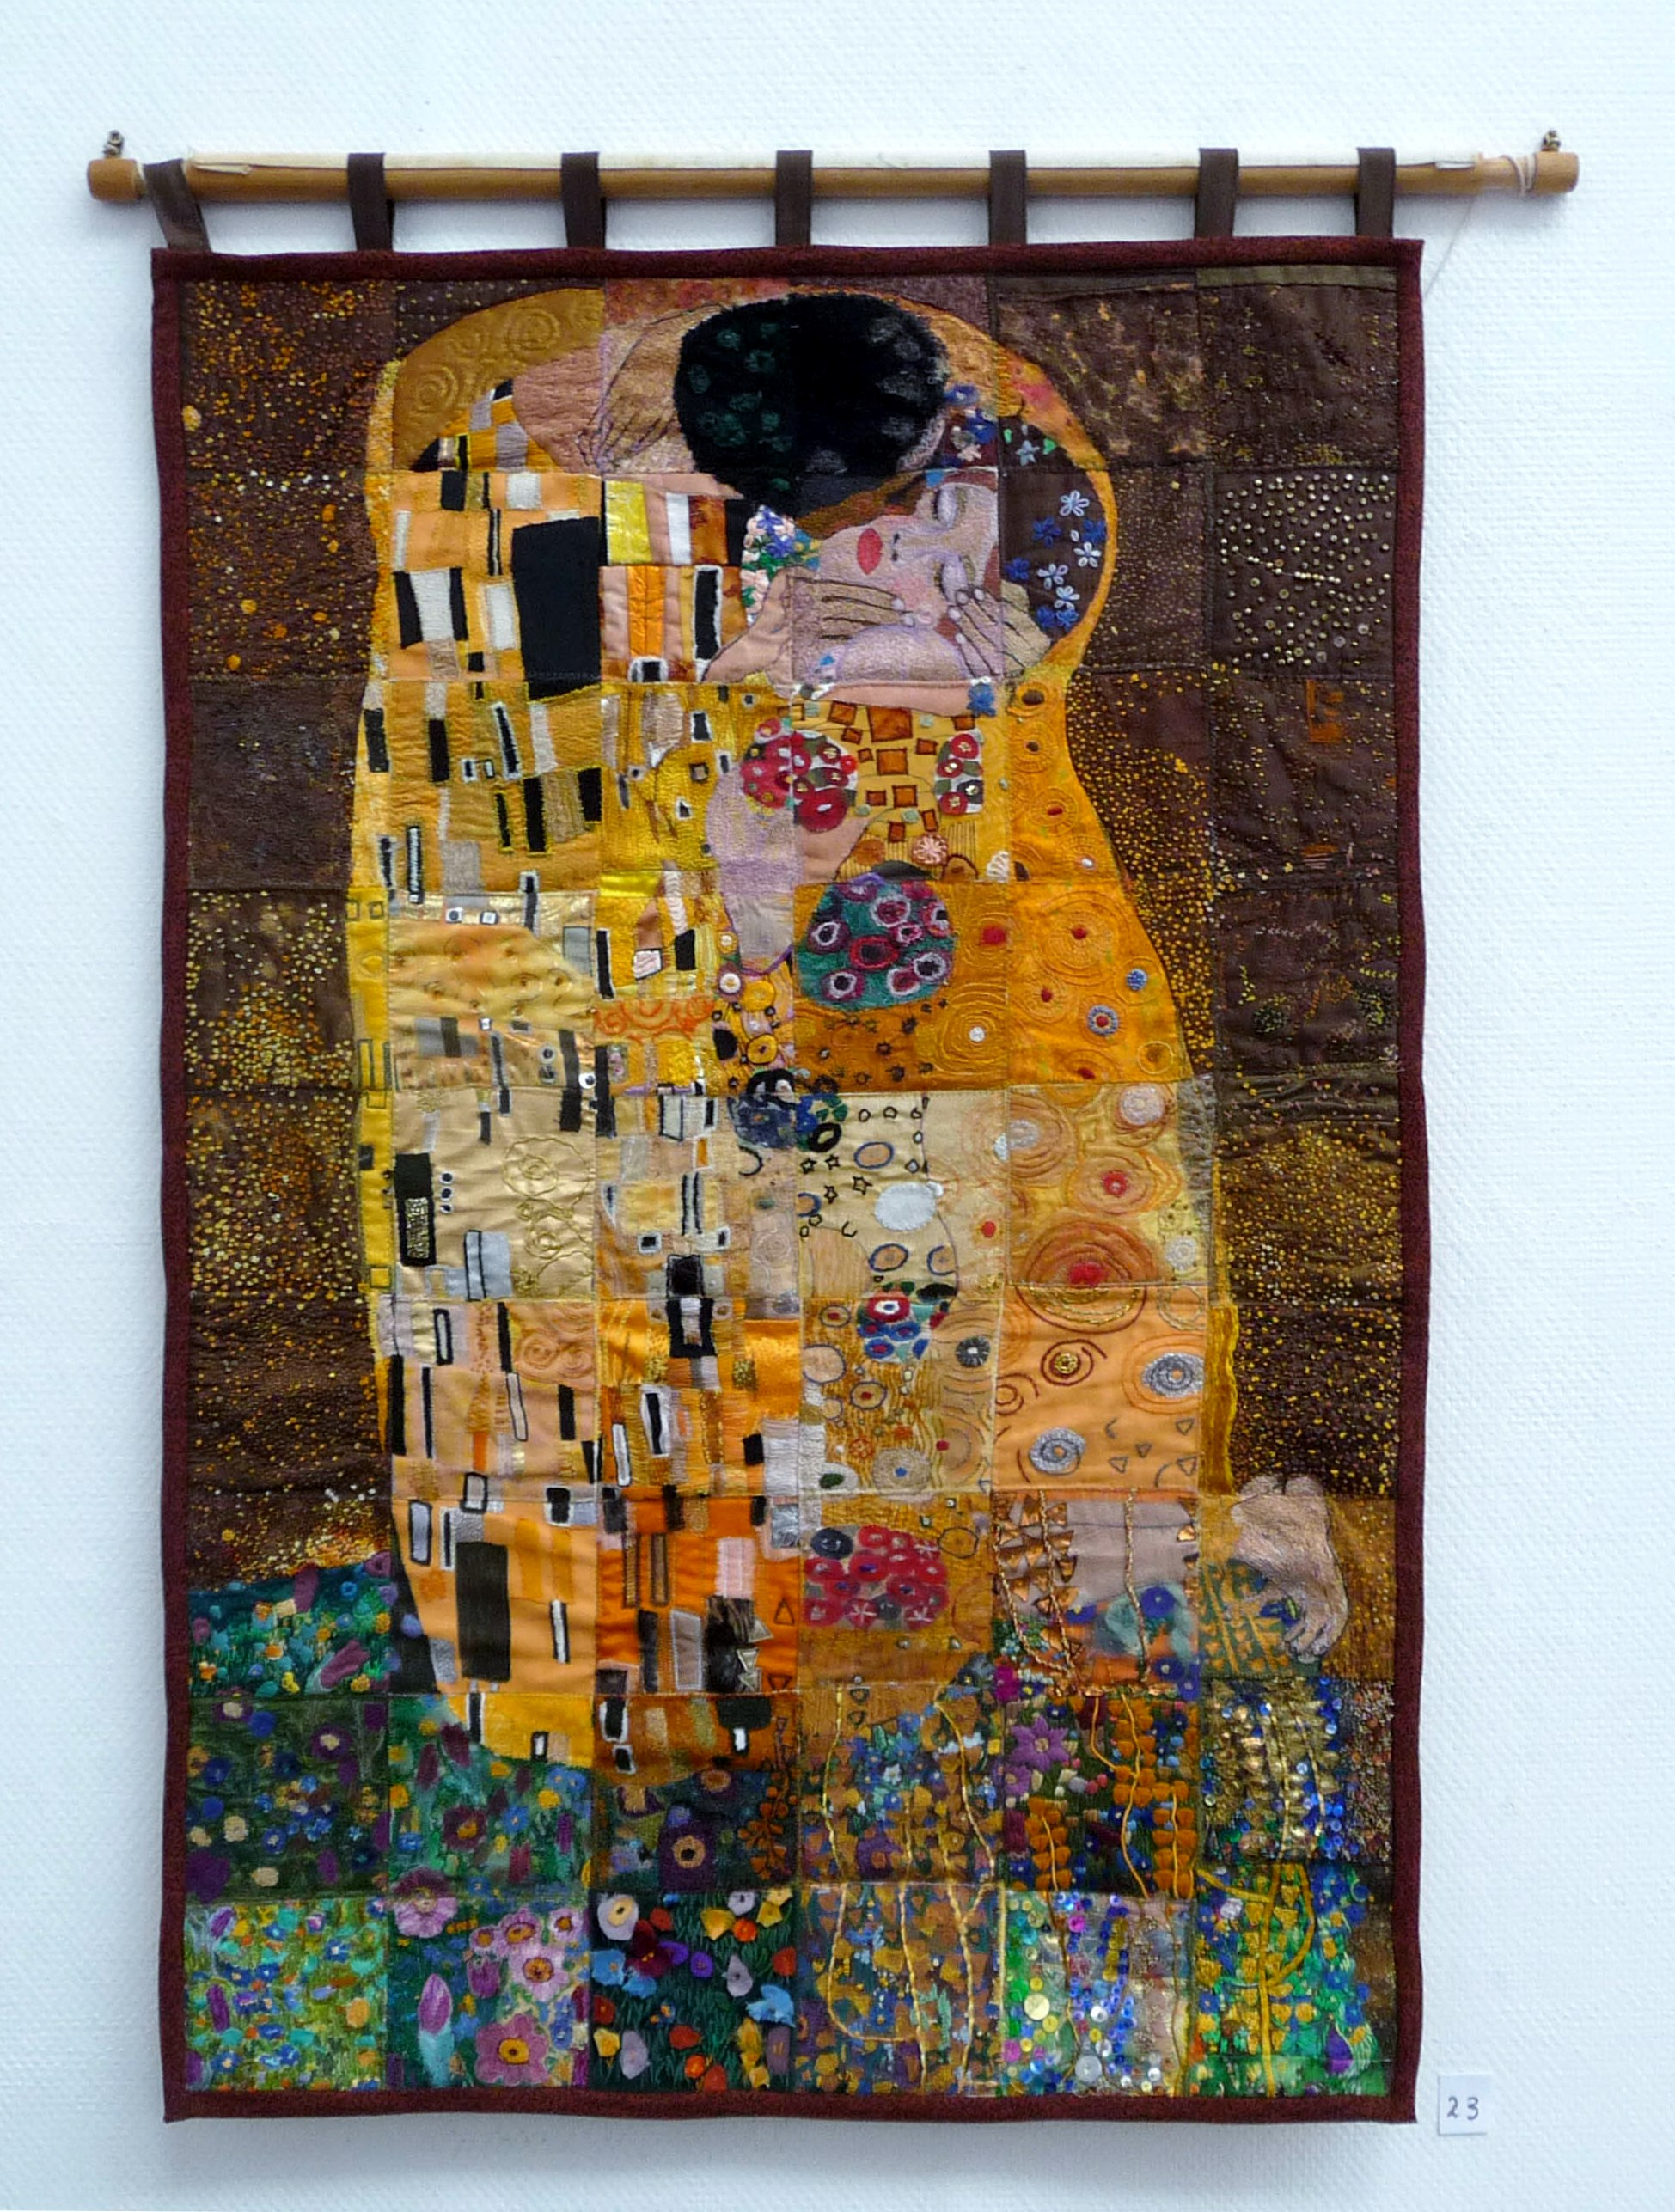 THE EMBRACE, Wirral EG Branch project, stitched wall hanging